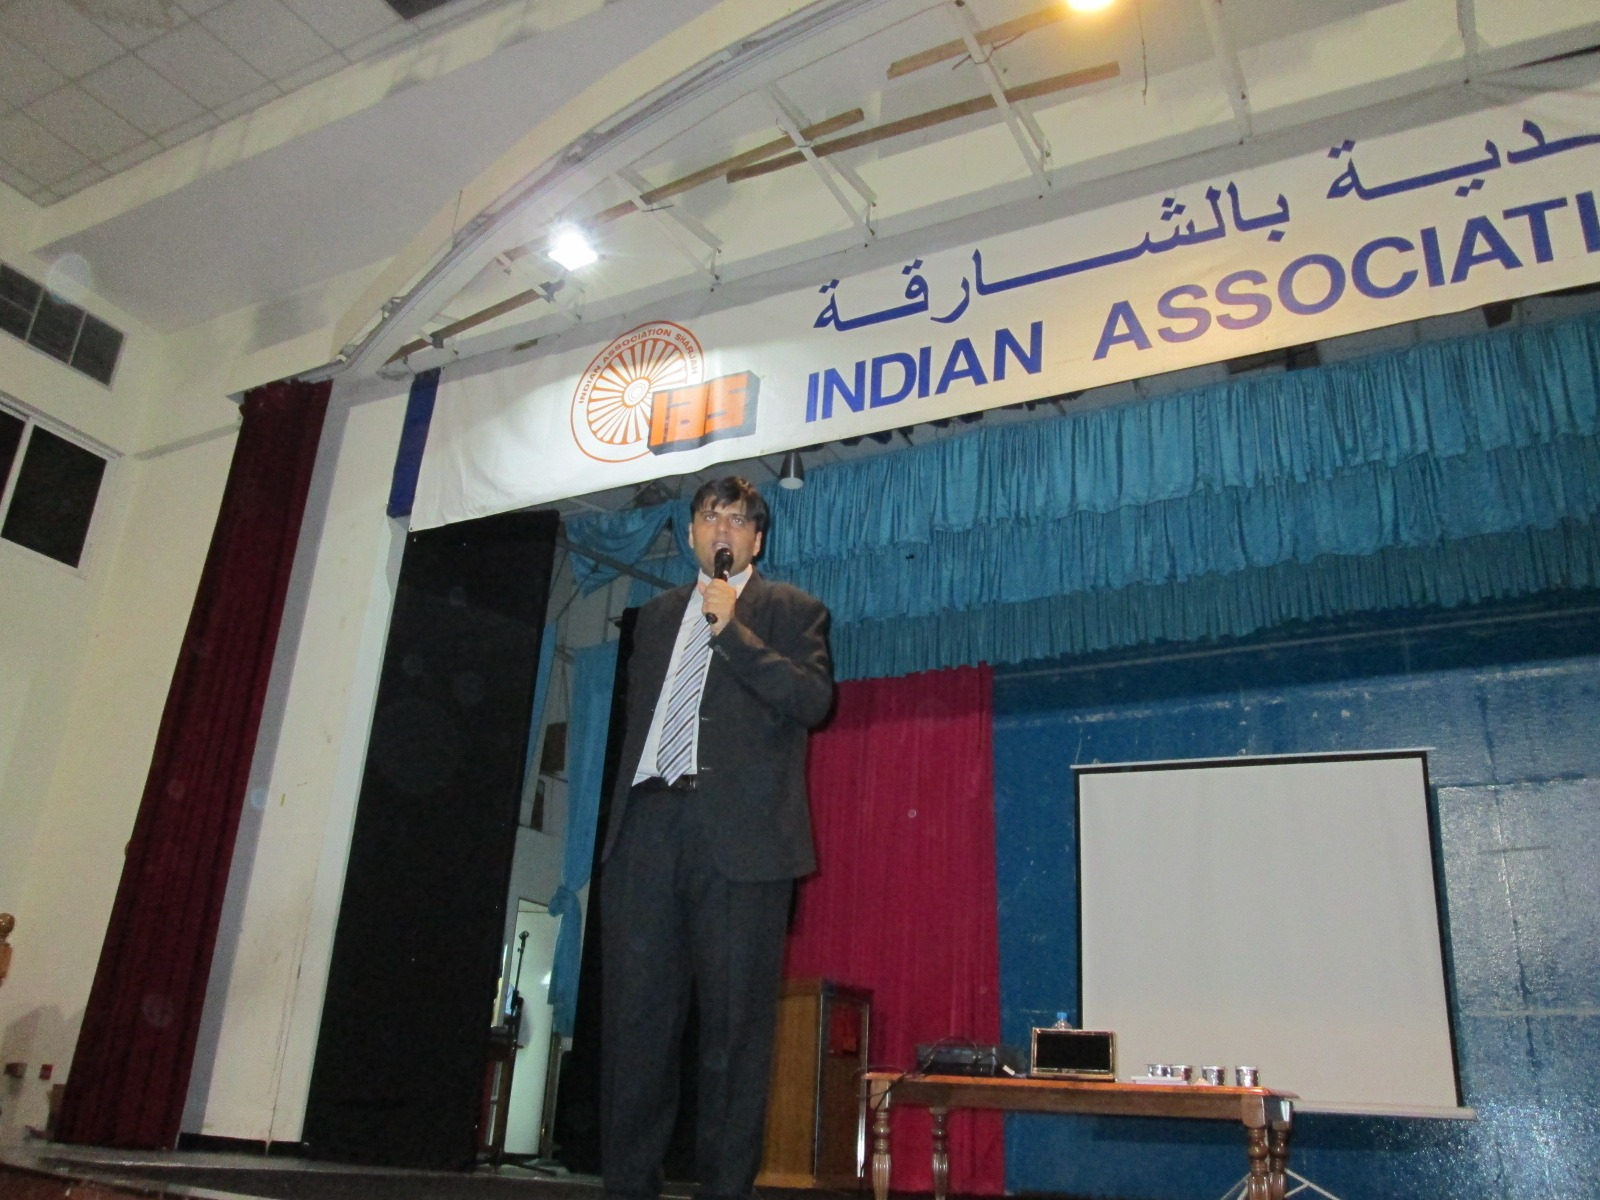 Invited by Indian Association